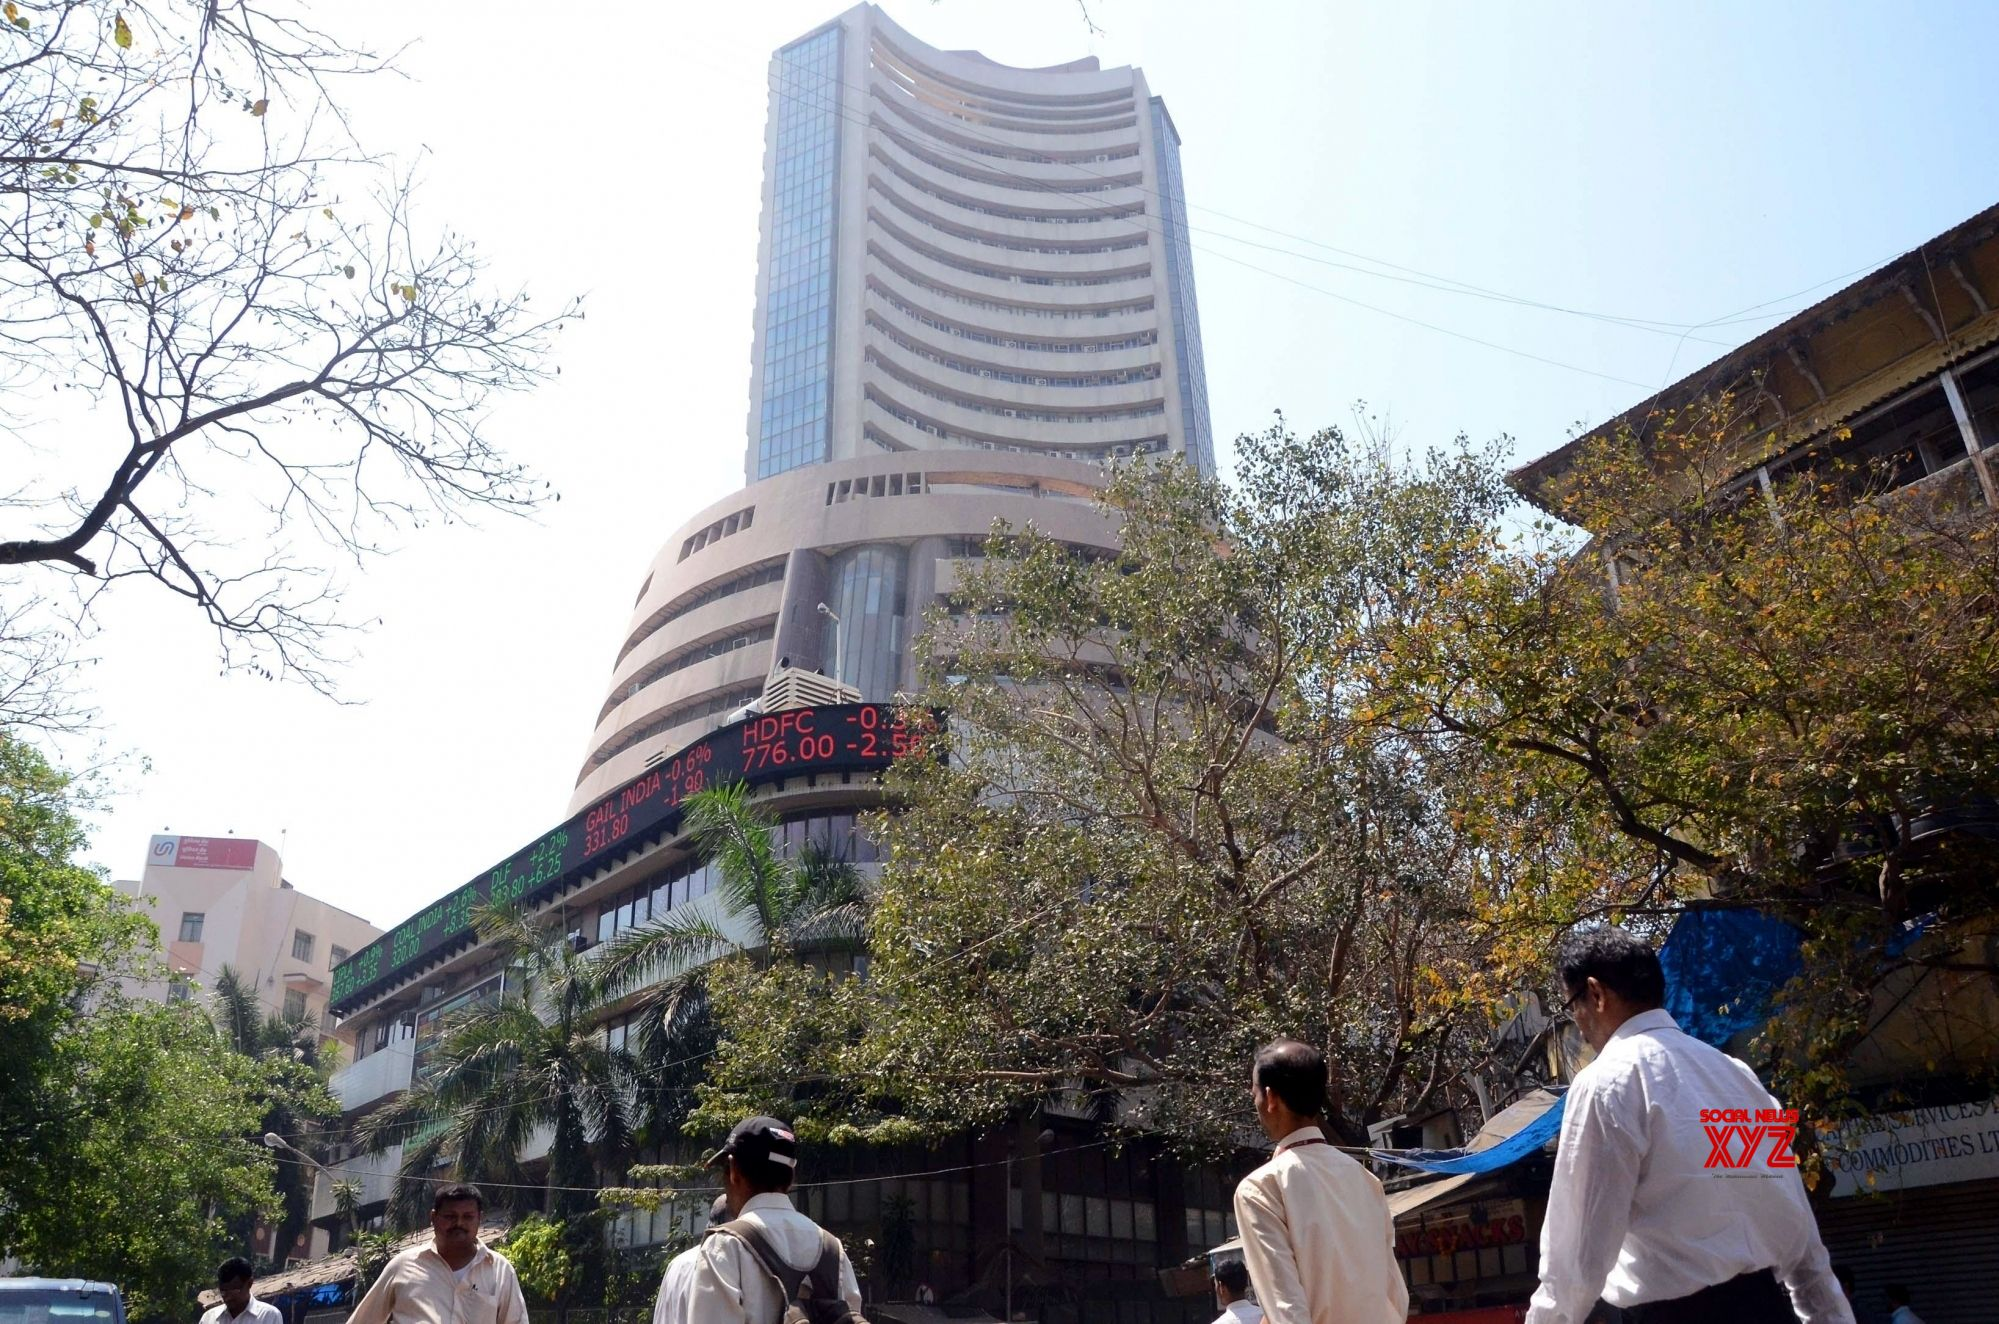 Sensex gains 278 points led by IT stocks